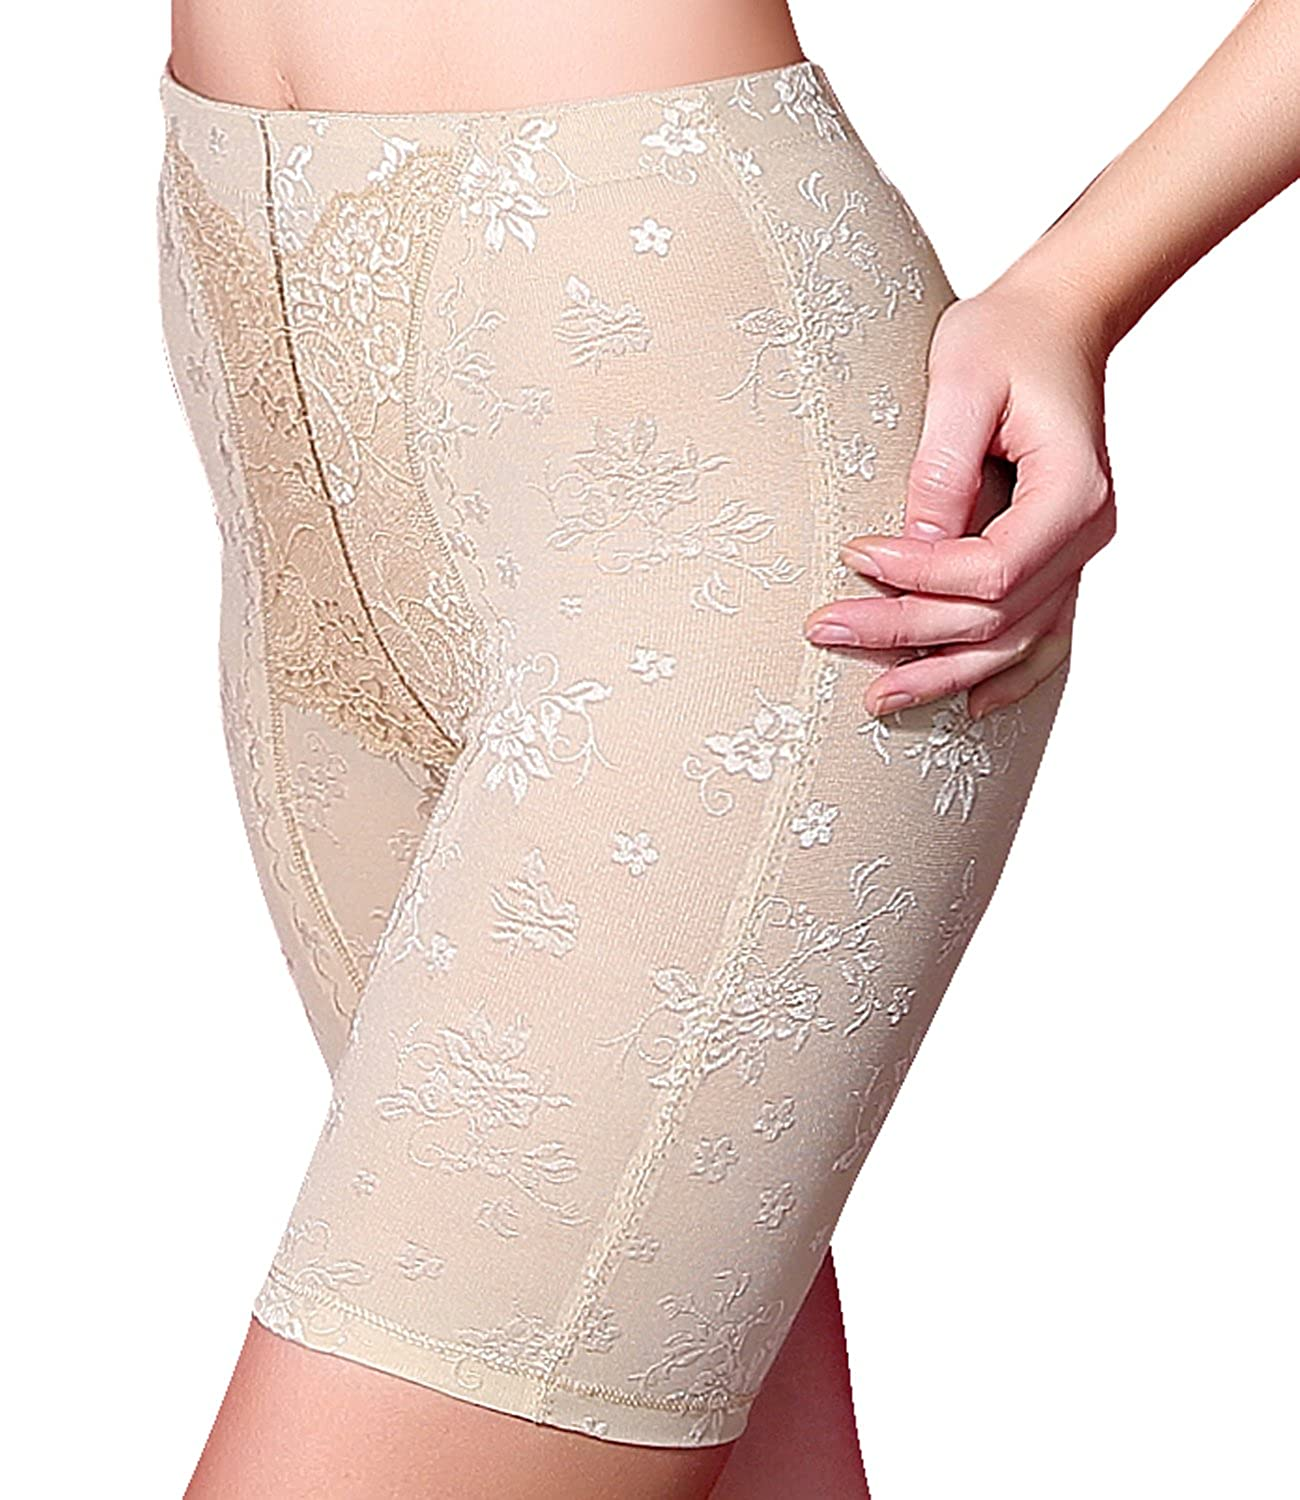 Junlan Women's Smooth Lace Shapewear High-Waist Thigh Slimmer Shorts